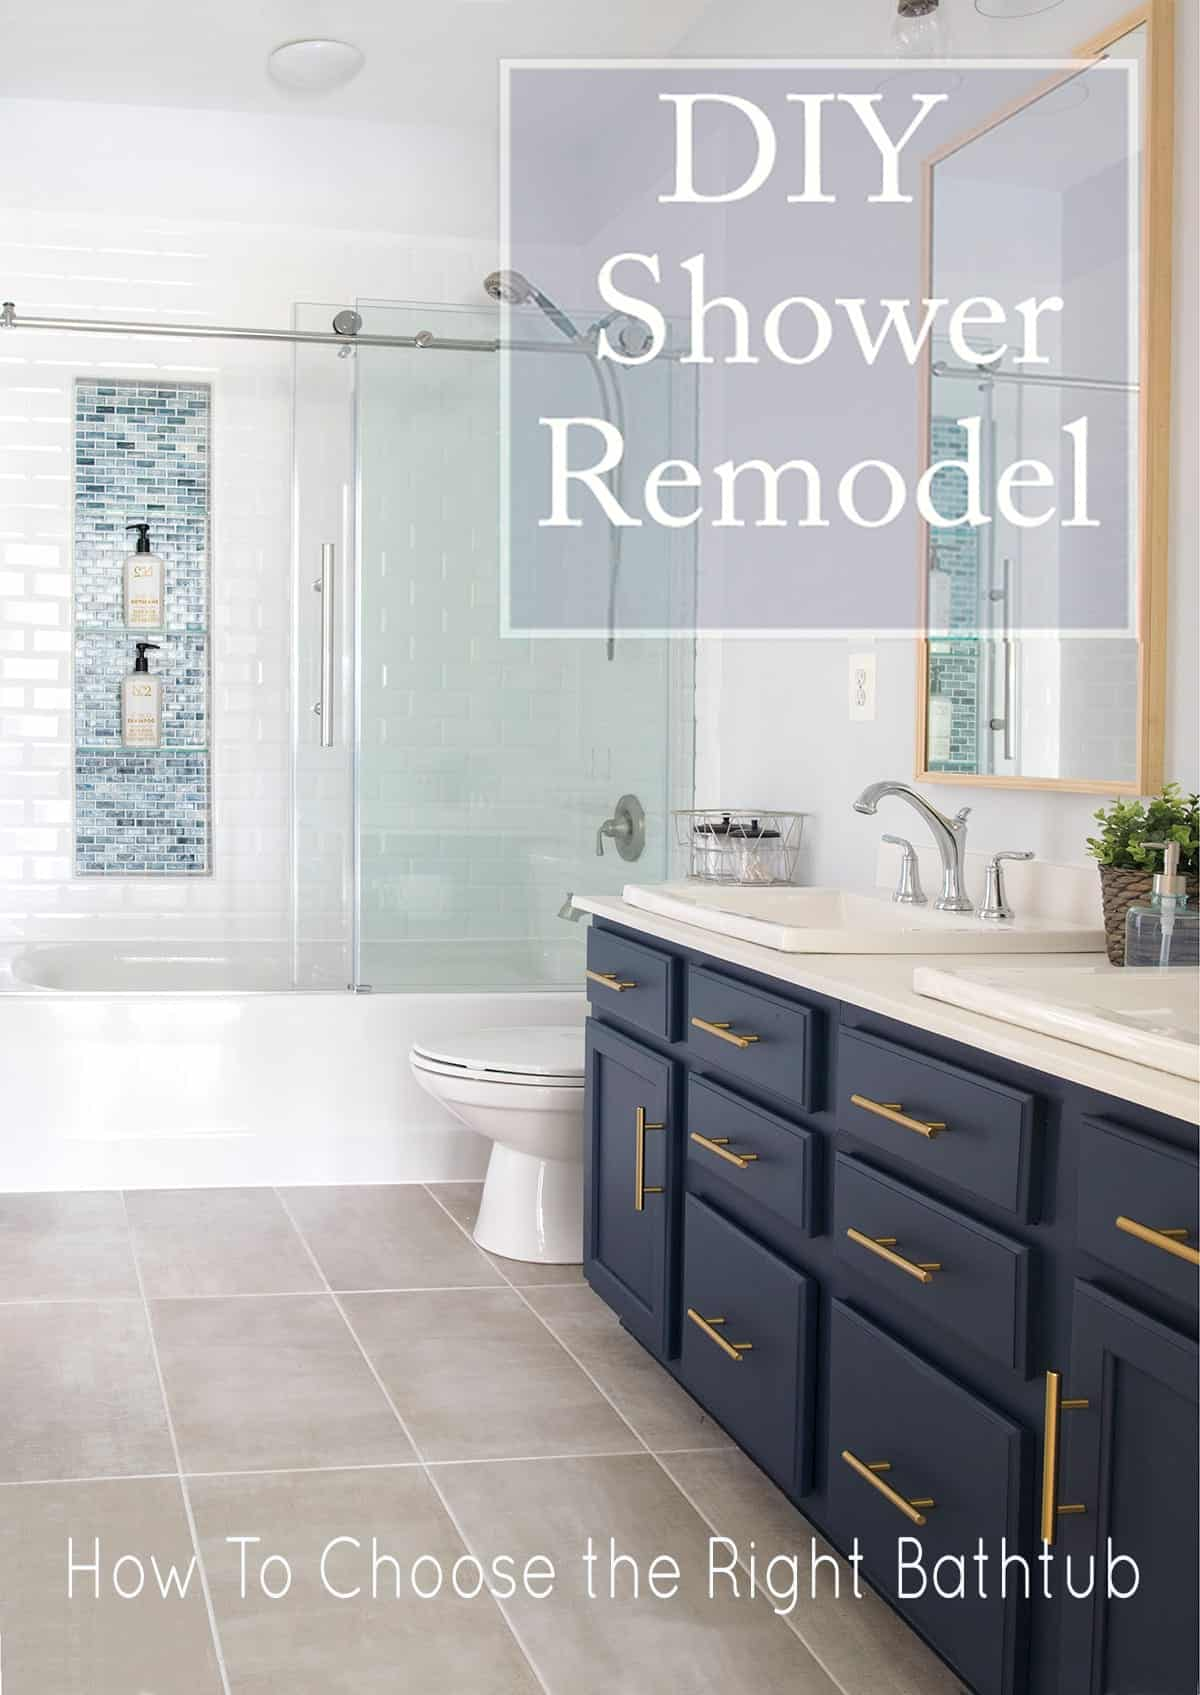 How to Choose the right Bathtub for your shower remodel. We installed our shower, tile, and shower doors ourselves and the choice was pretty hard but these tips make the decision easy.